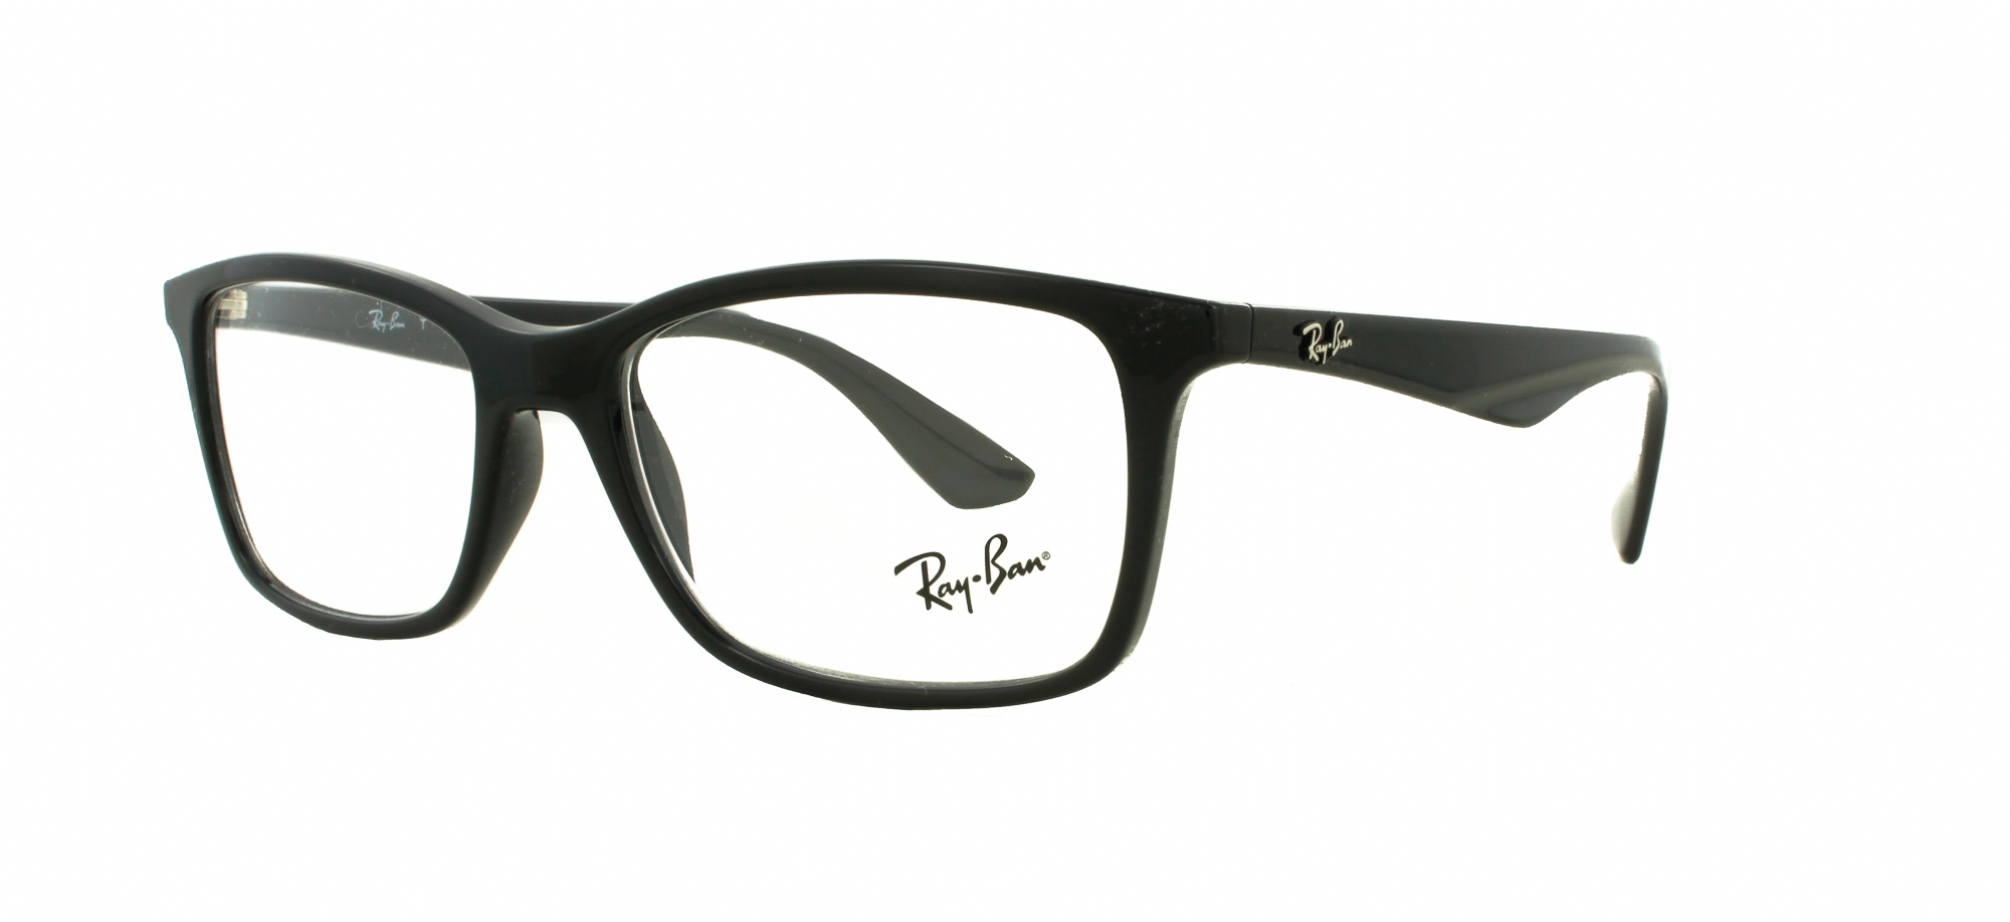 ray ban optical glasses 6wqc  ray ban optical glasses